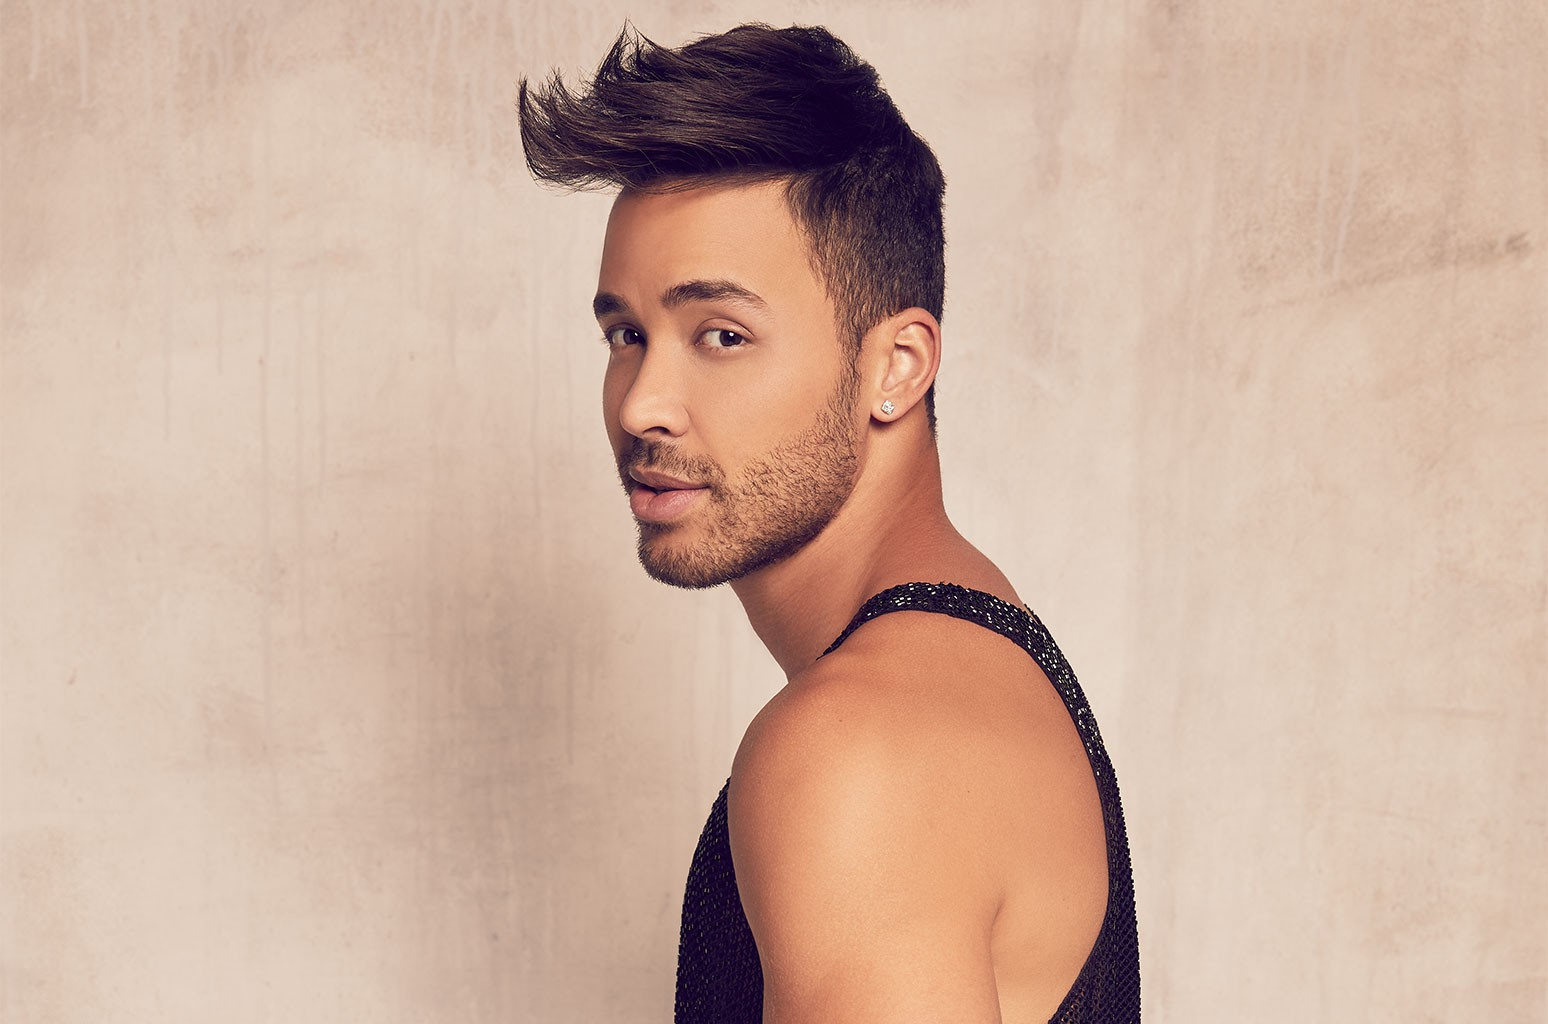 Prince Royce Phone number, Email Id, Fanmail, Instagram, Tiktok, and Contact Details